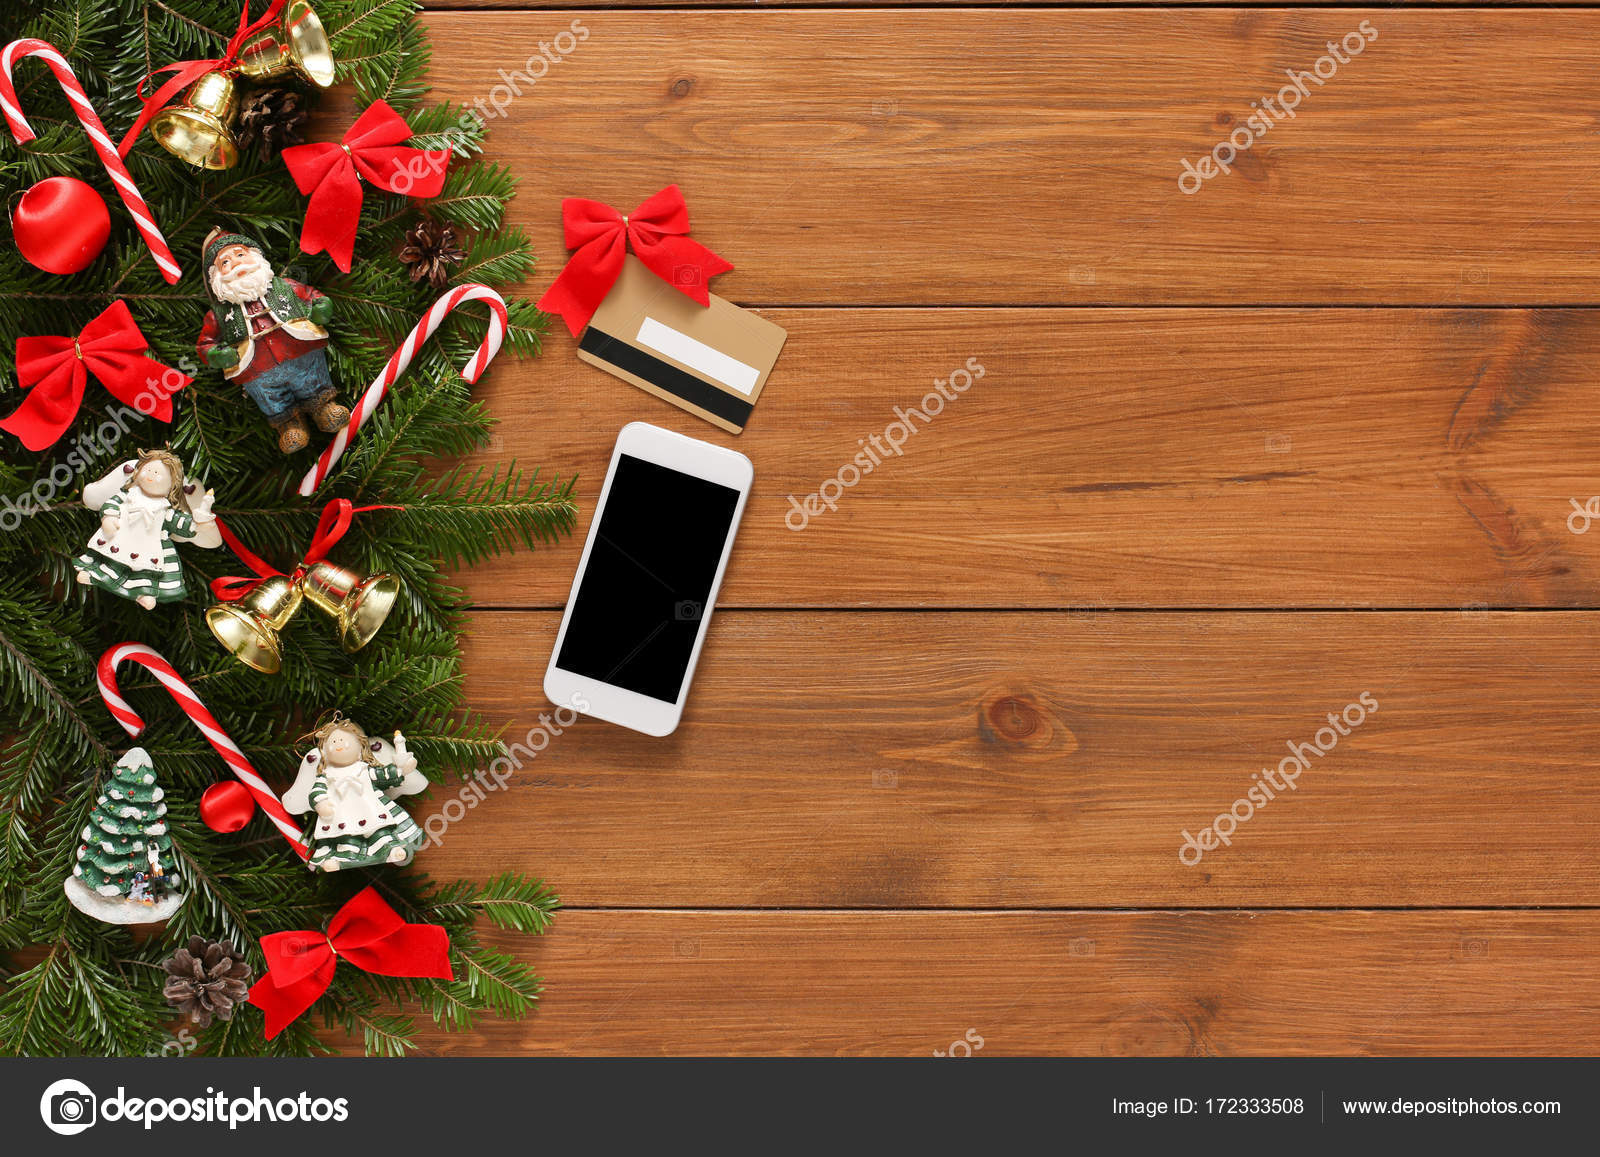 Online paying for christmas decor background — Stock Photo